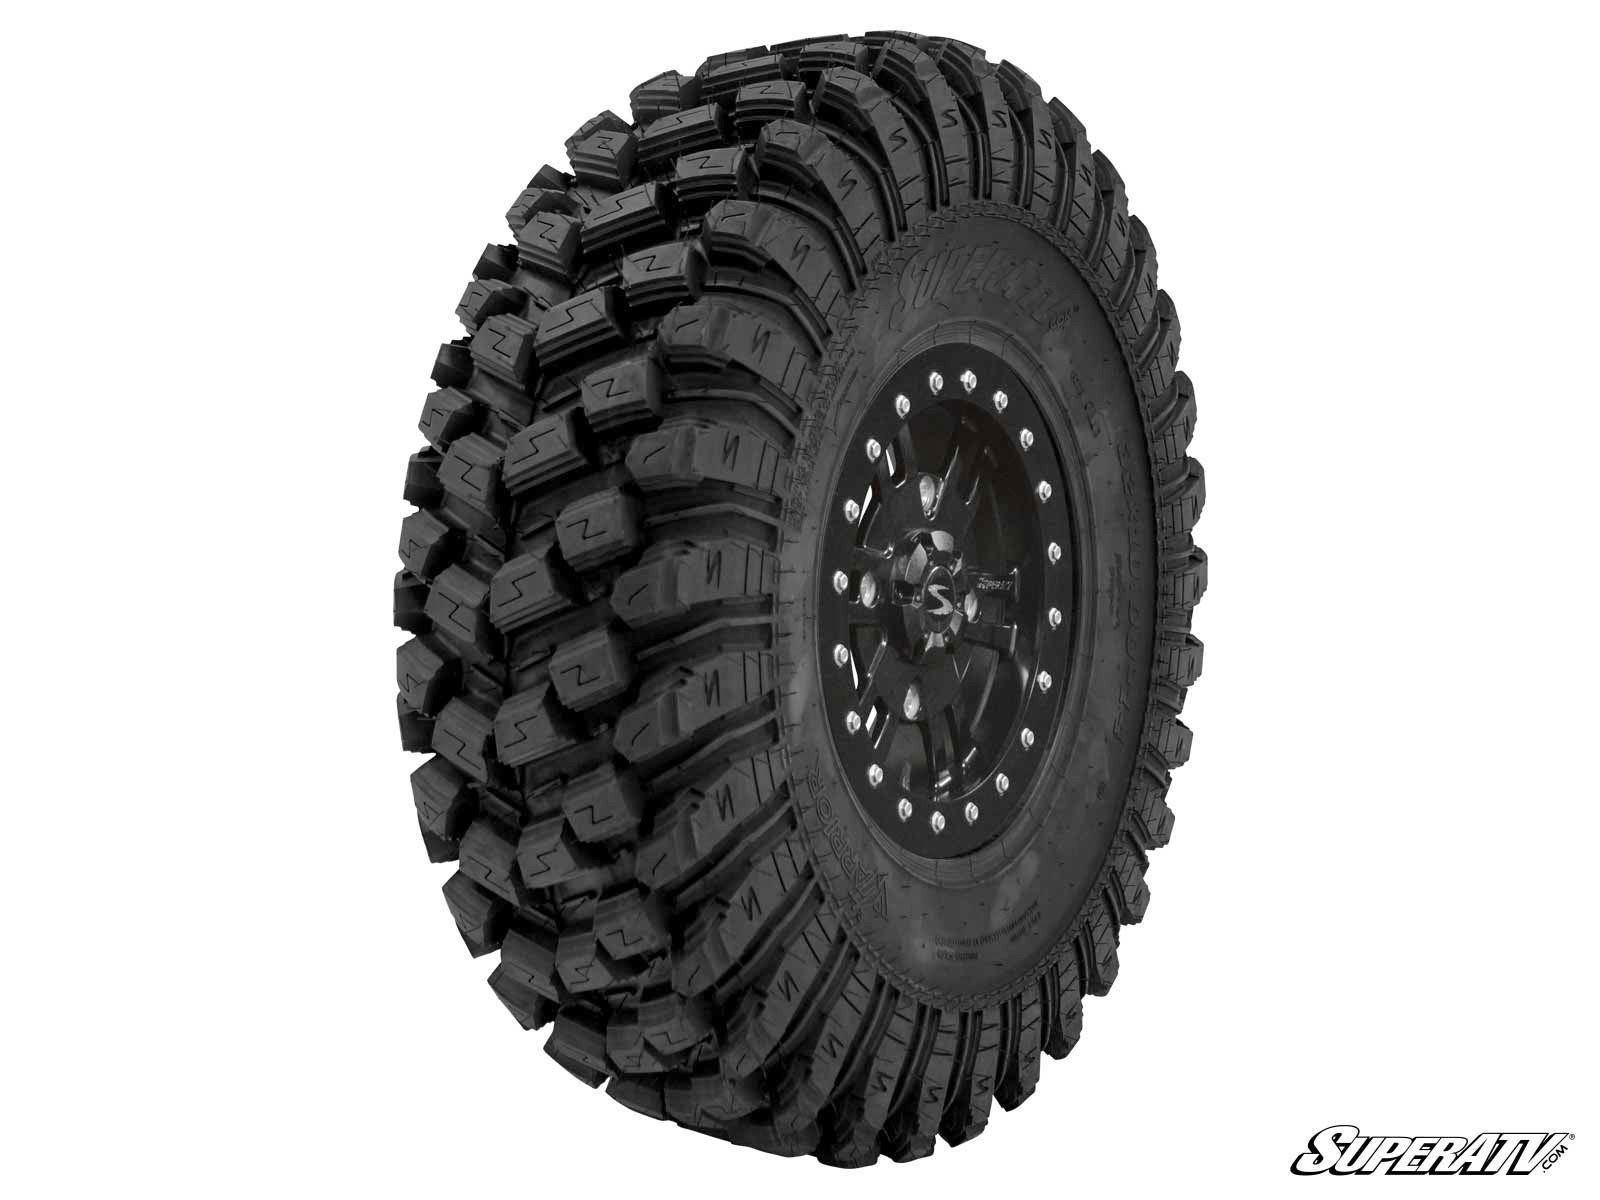 Super Atv Tires